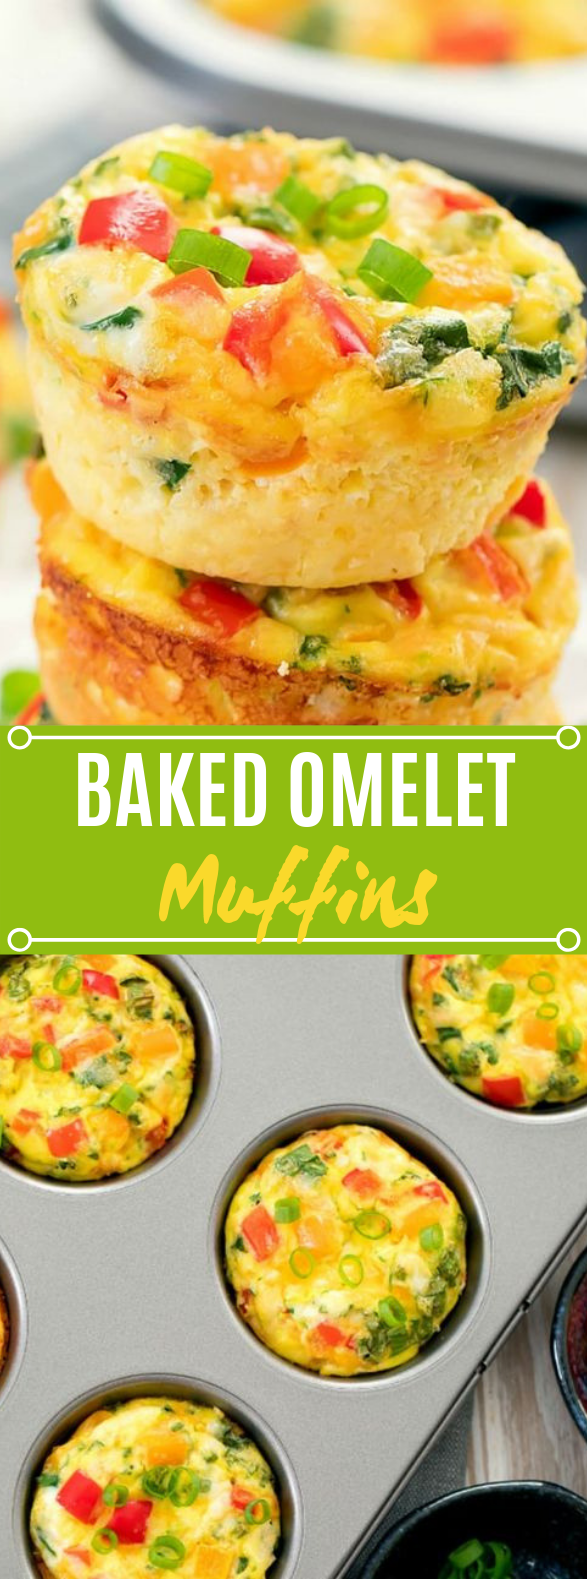 Omelet Muffins #healthy #breakfast